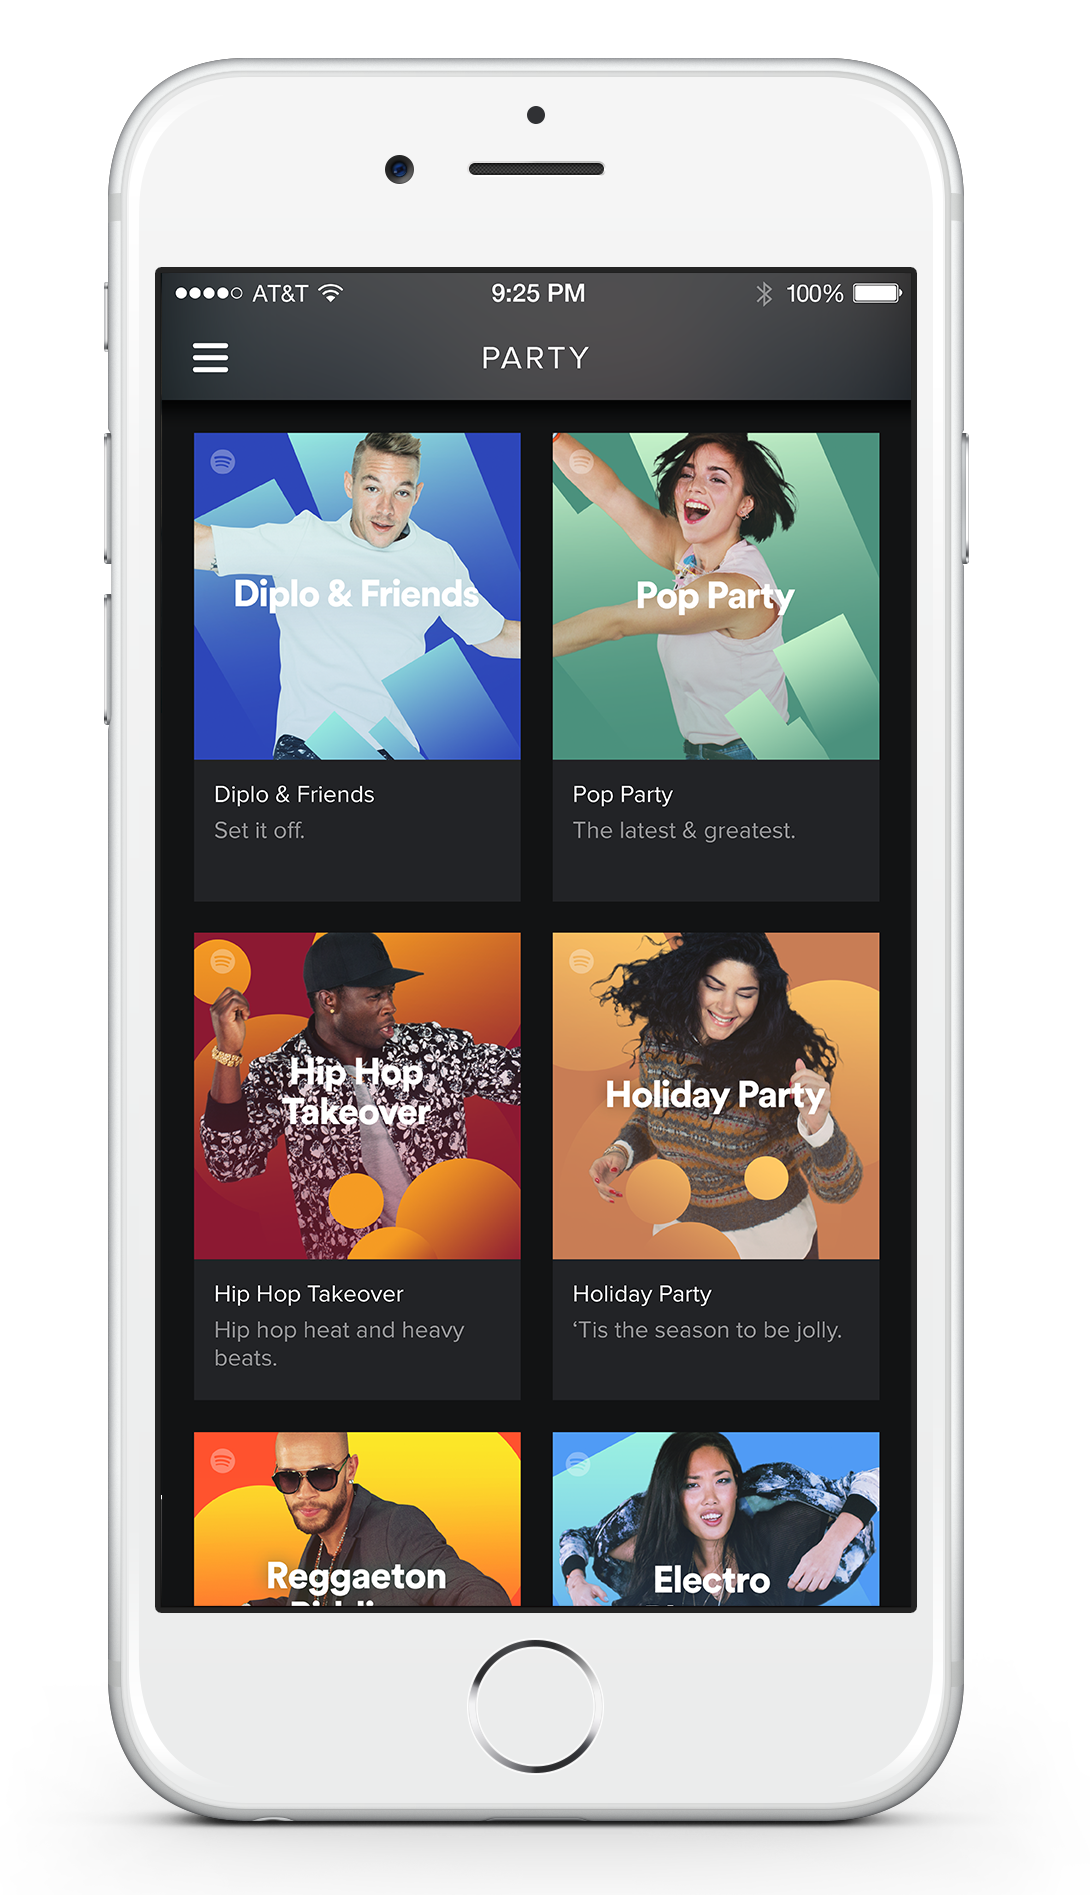 spotify musikstreaming service bringt neues party feature. Black Bedroom Furniture Sets. Home Design Ideas